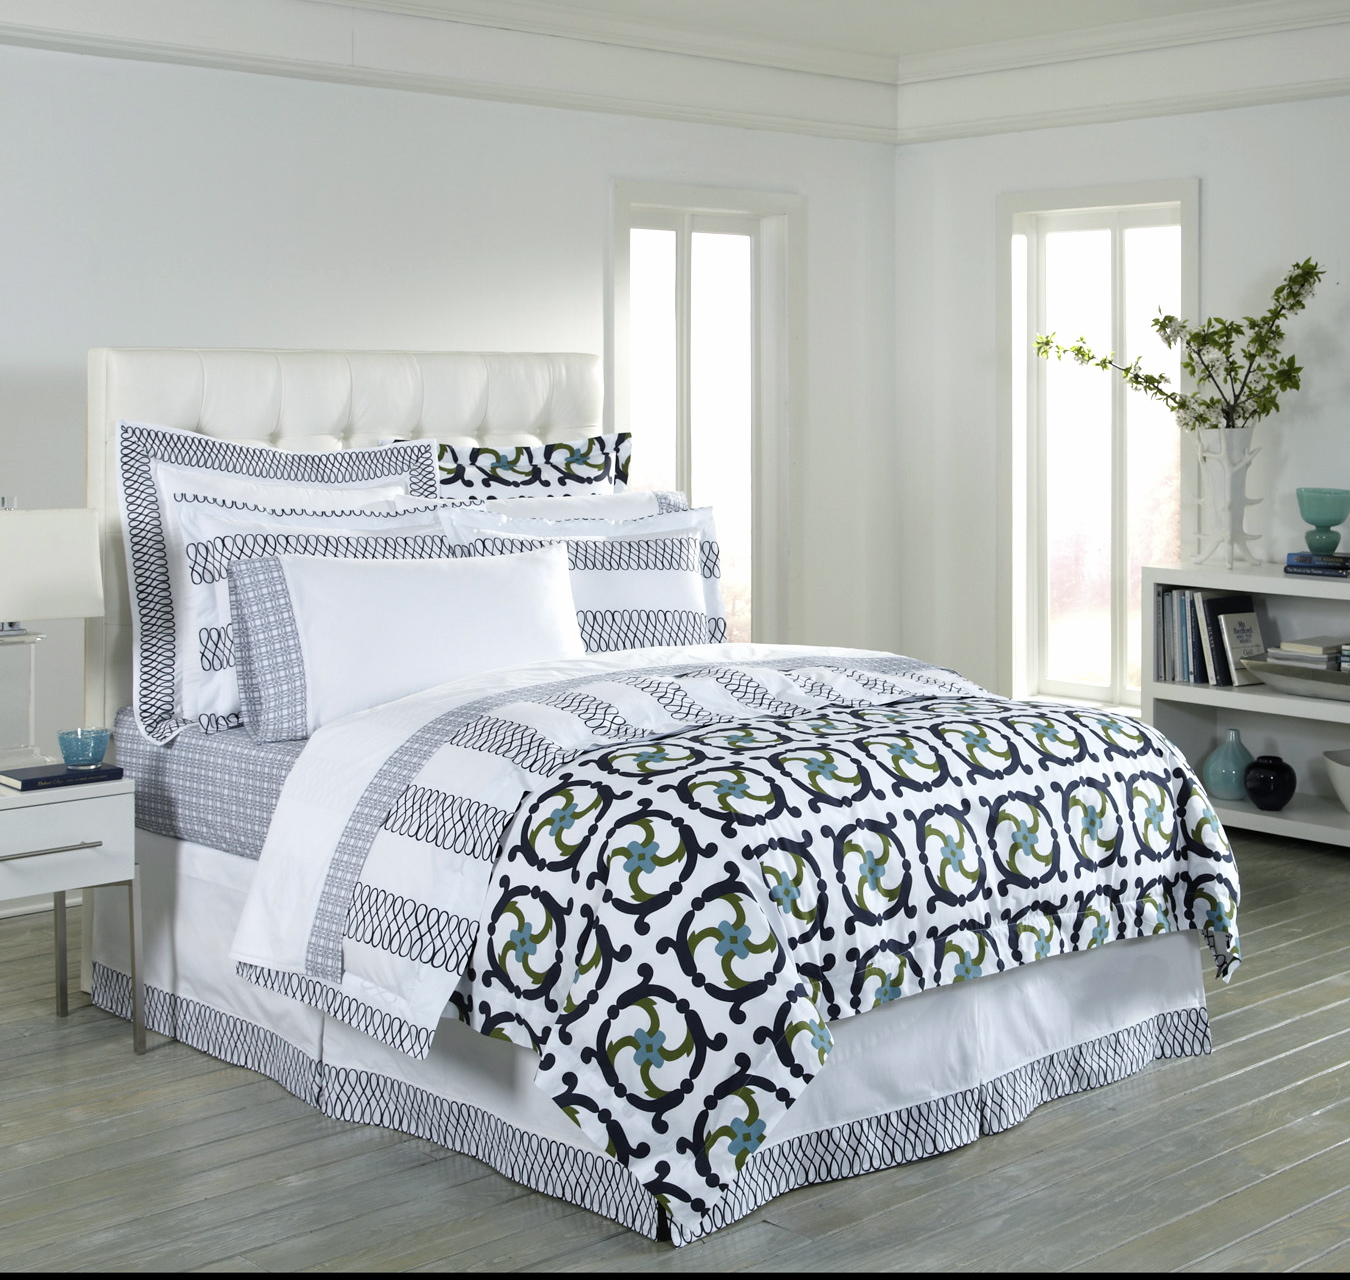 COCOCOZY: COCOCOZY CONVERTIBLE BEDDING FOR DOWNTOWN!